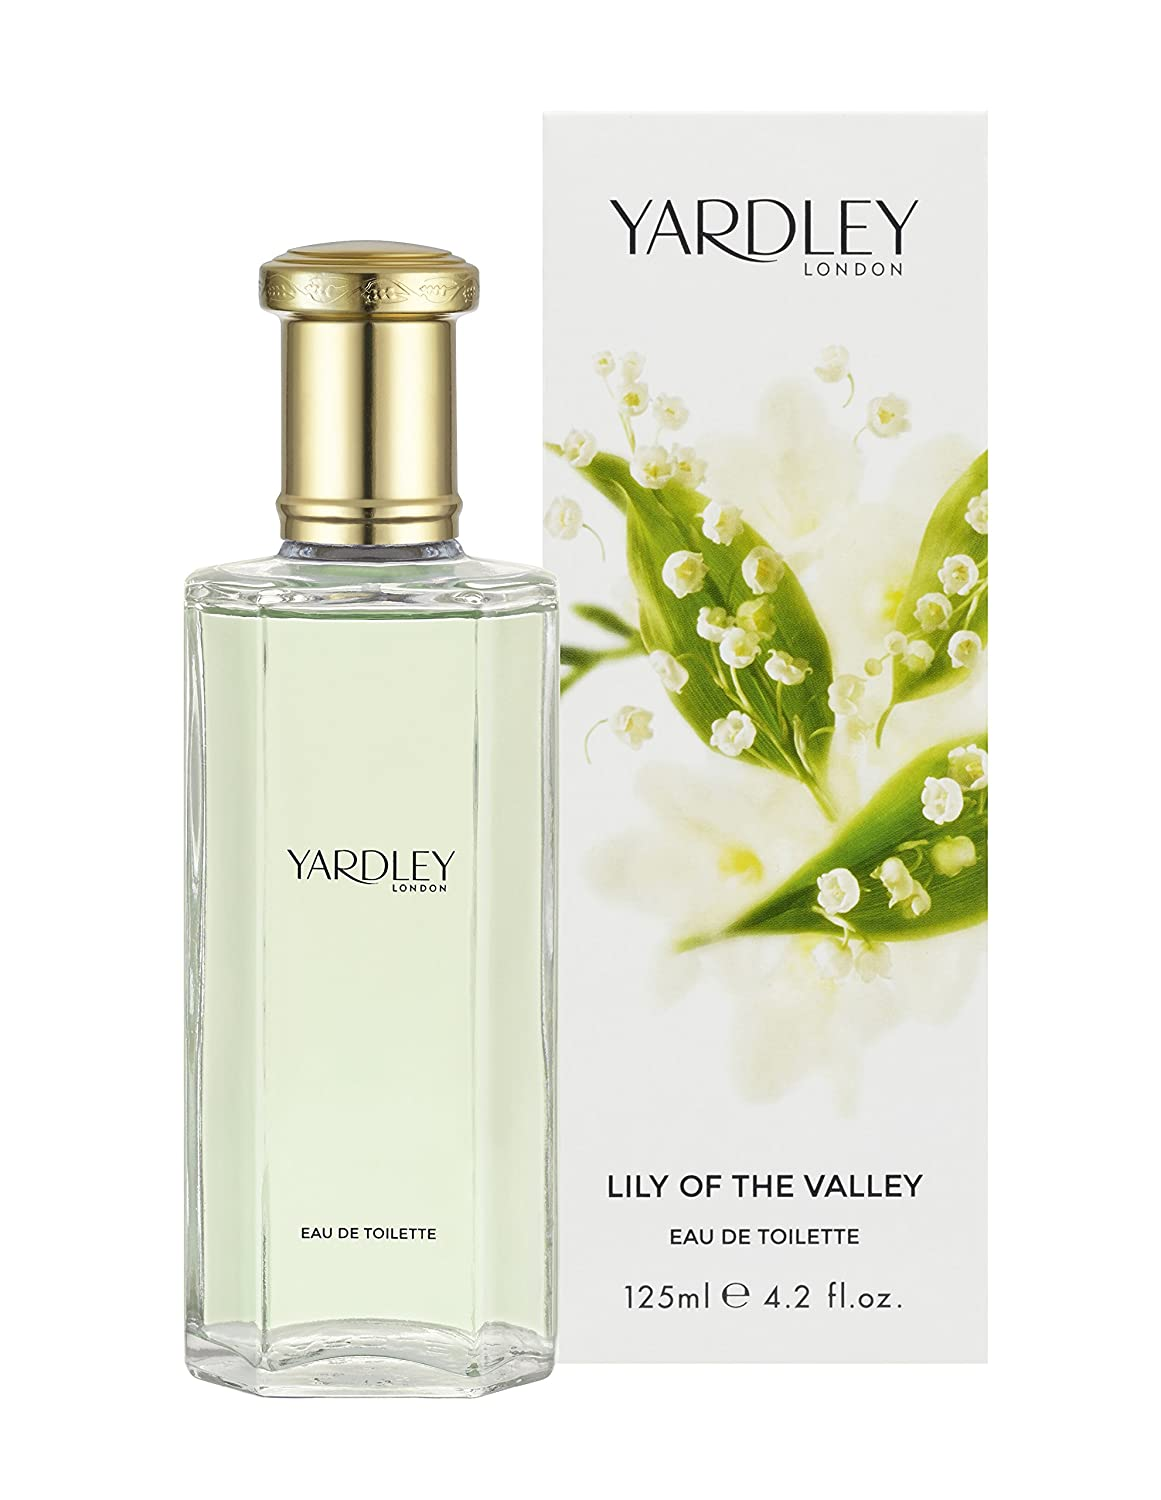 Yardley London Lily of the Valley EDT 125 ml HMC 215194